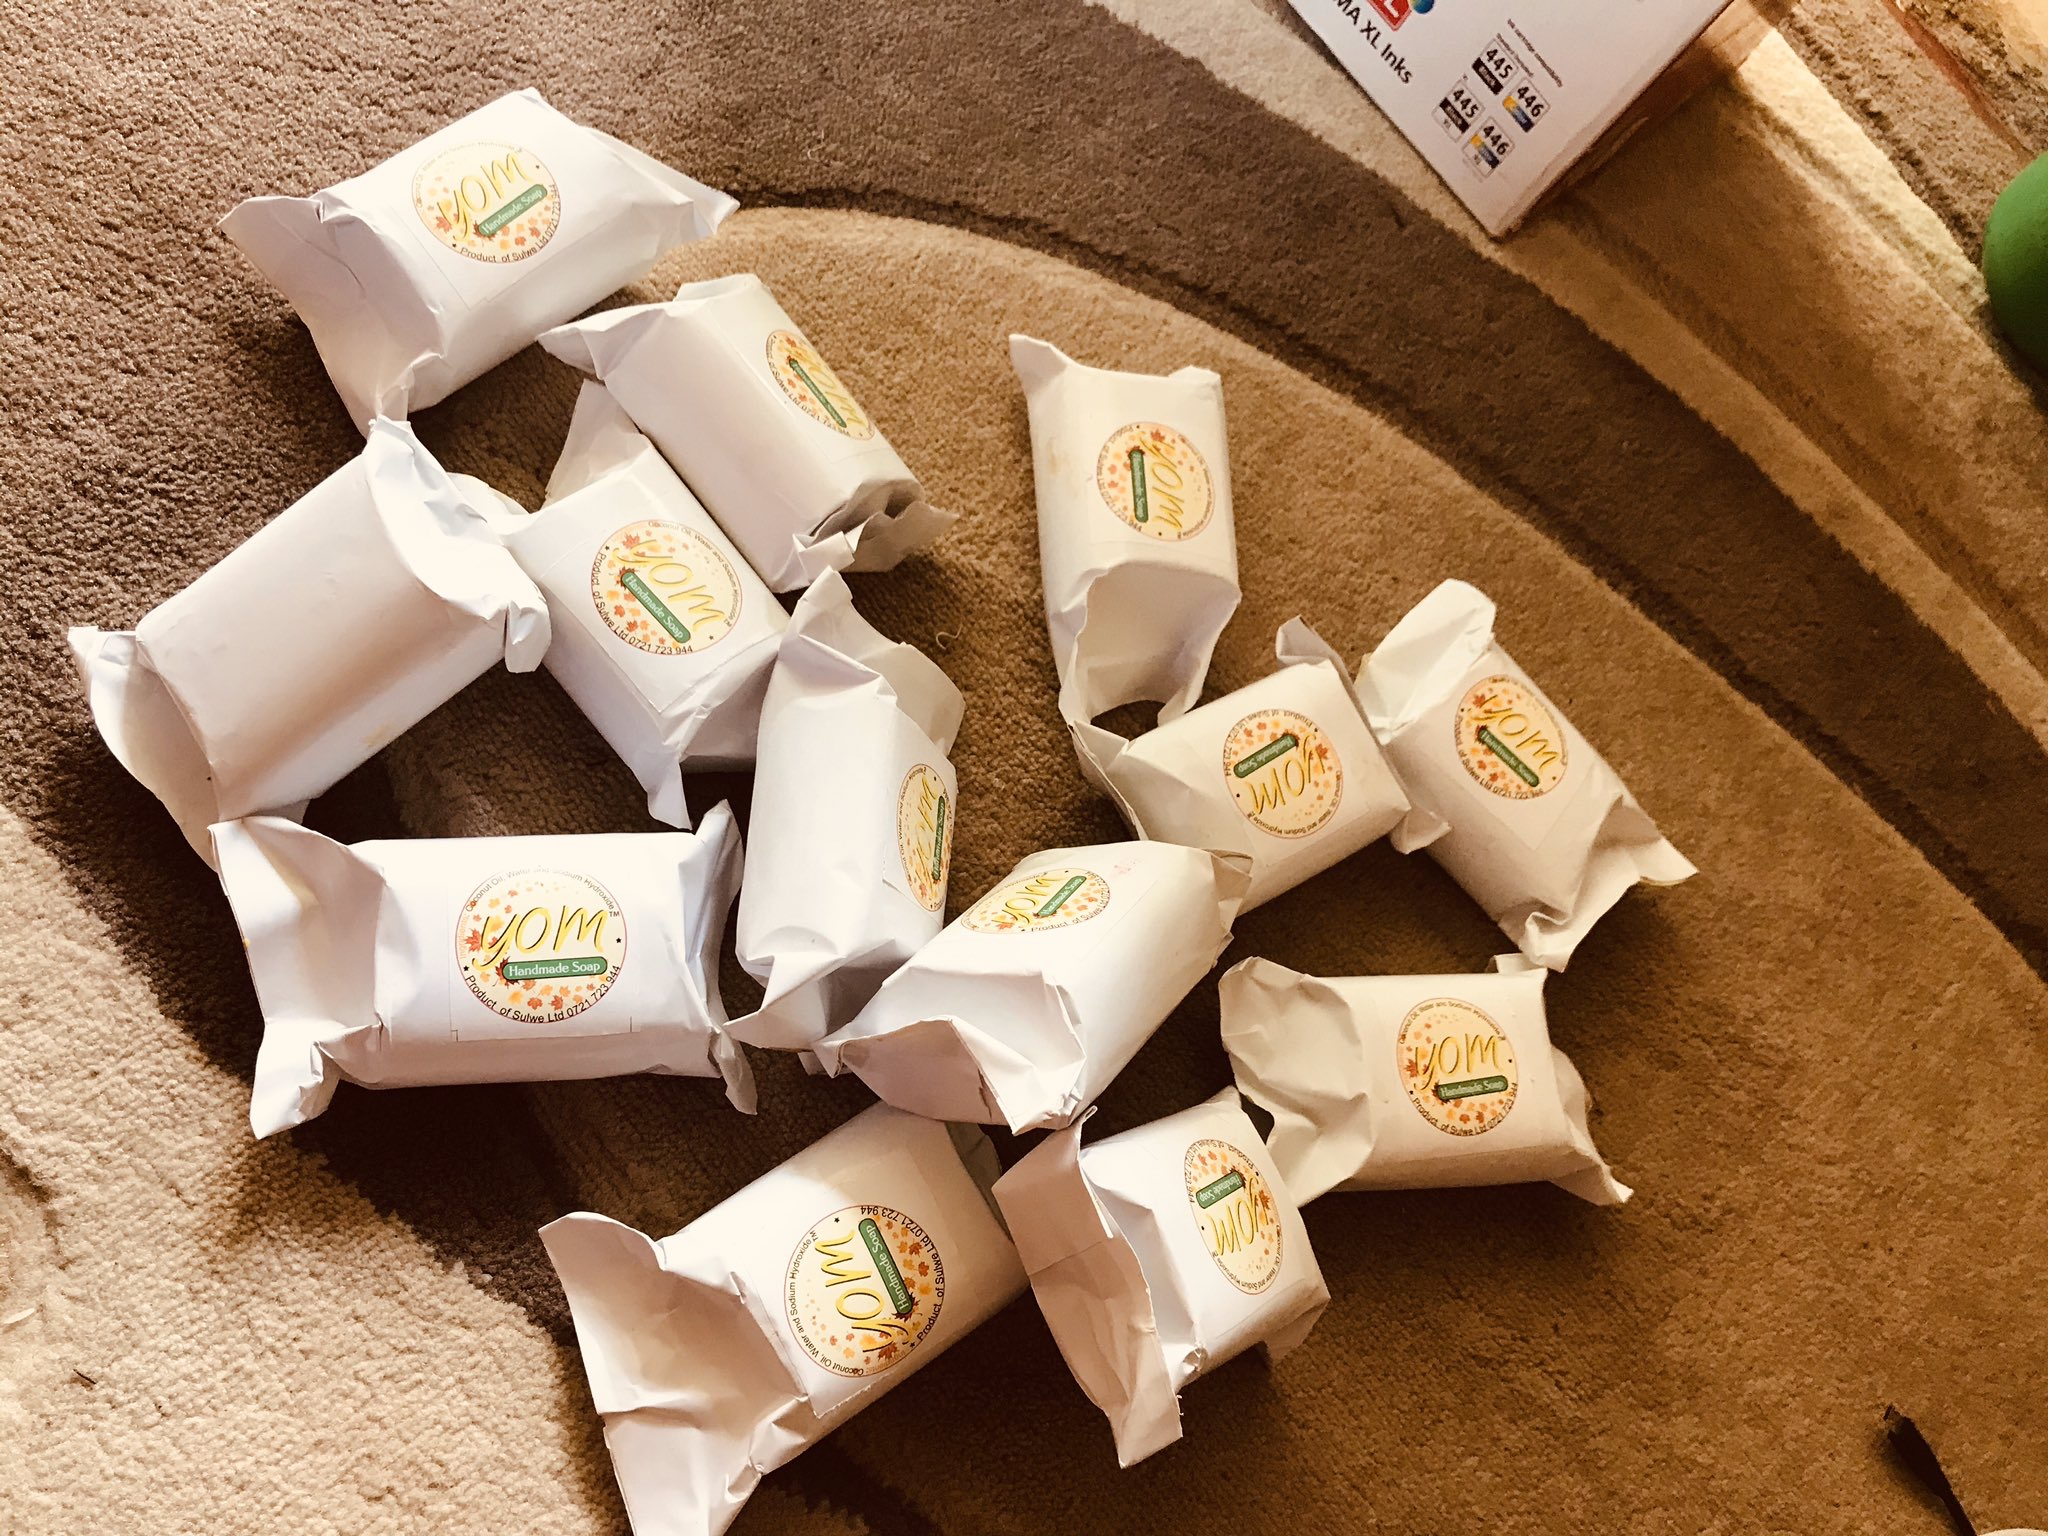 Handmade soaps received during the Covid-19 aid drive.